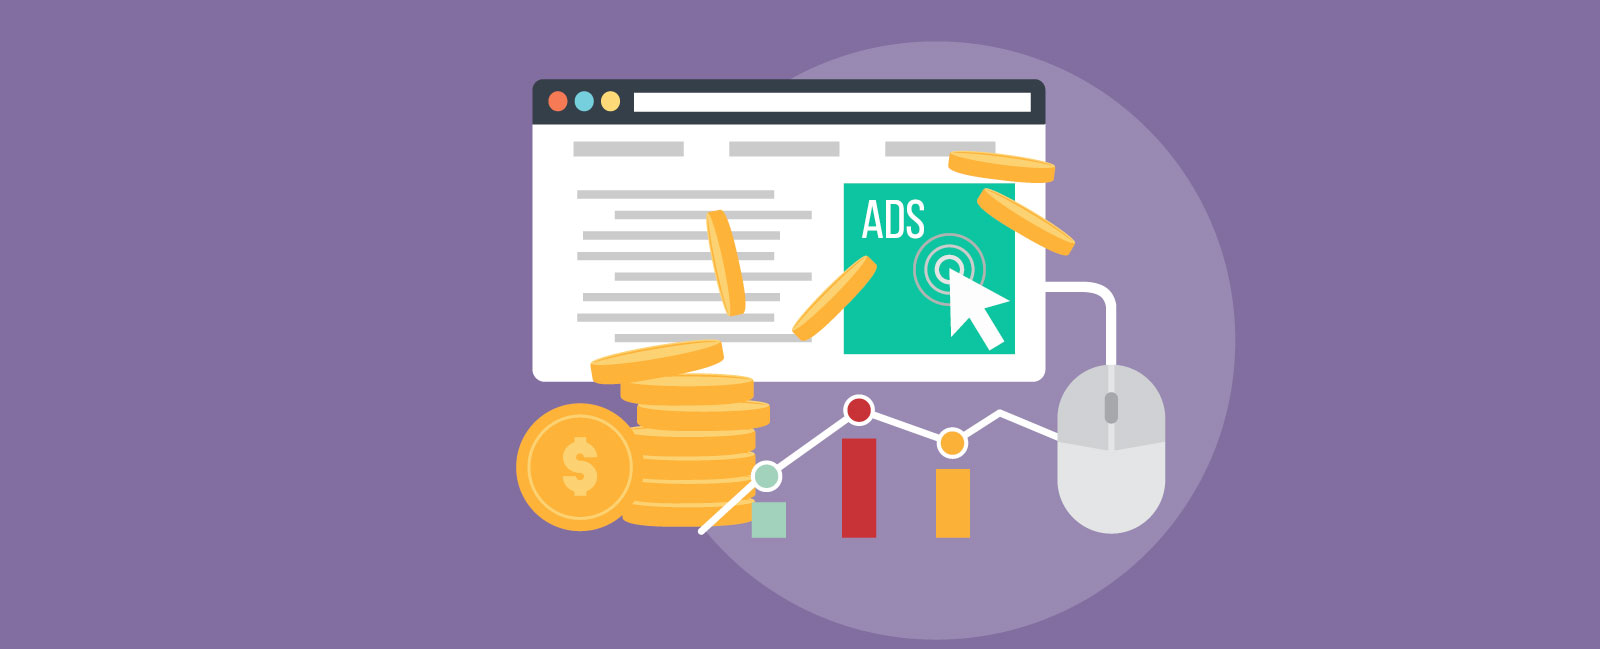 Vendere con il Keywords Advertising : Pay Per Click vincente per la tua impresa